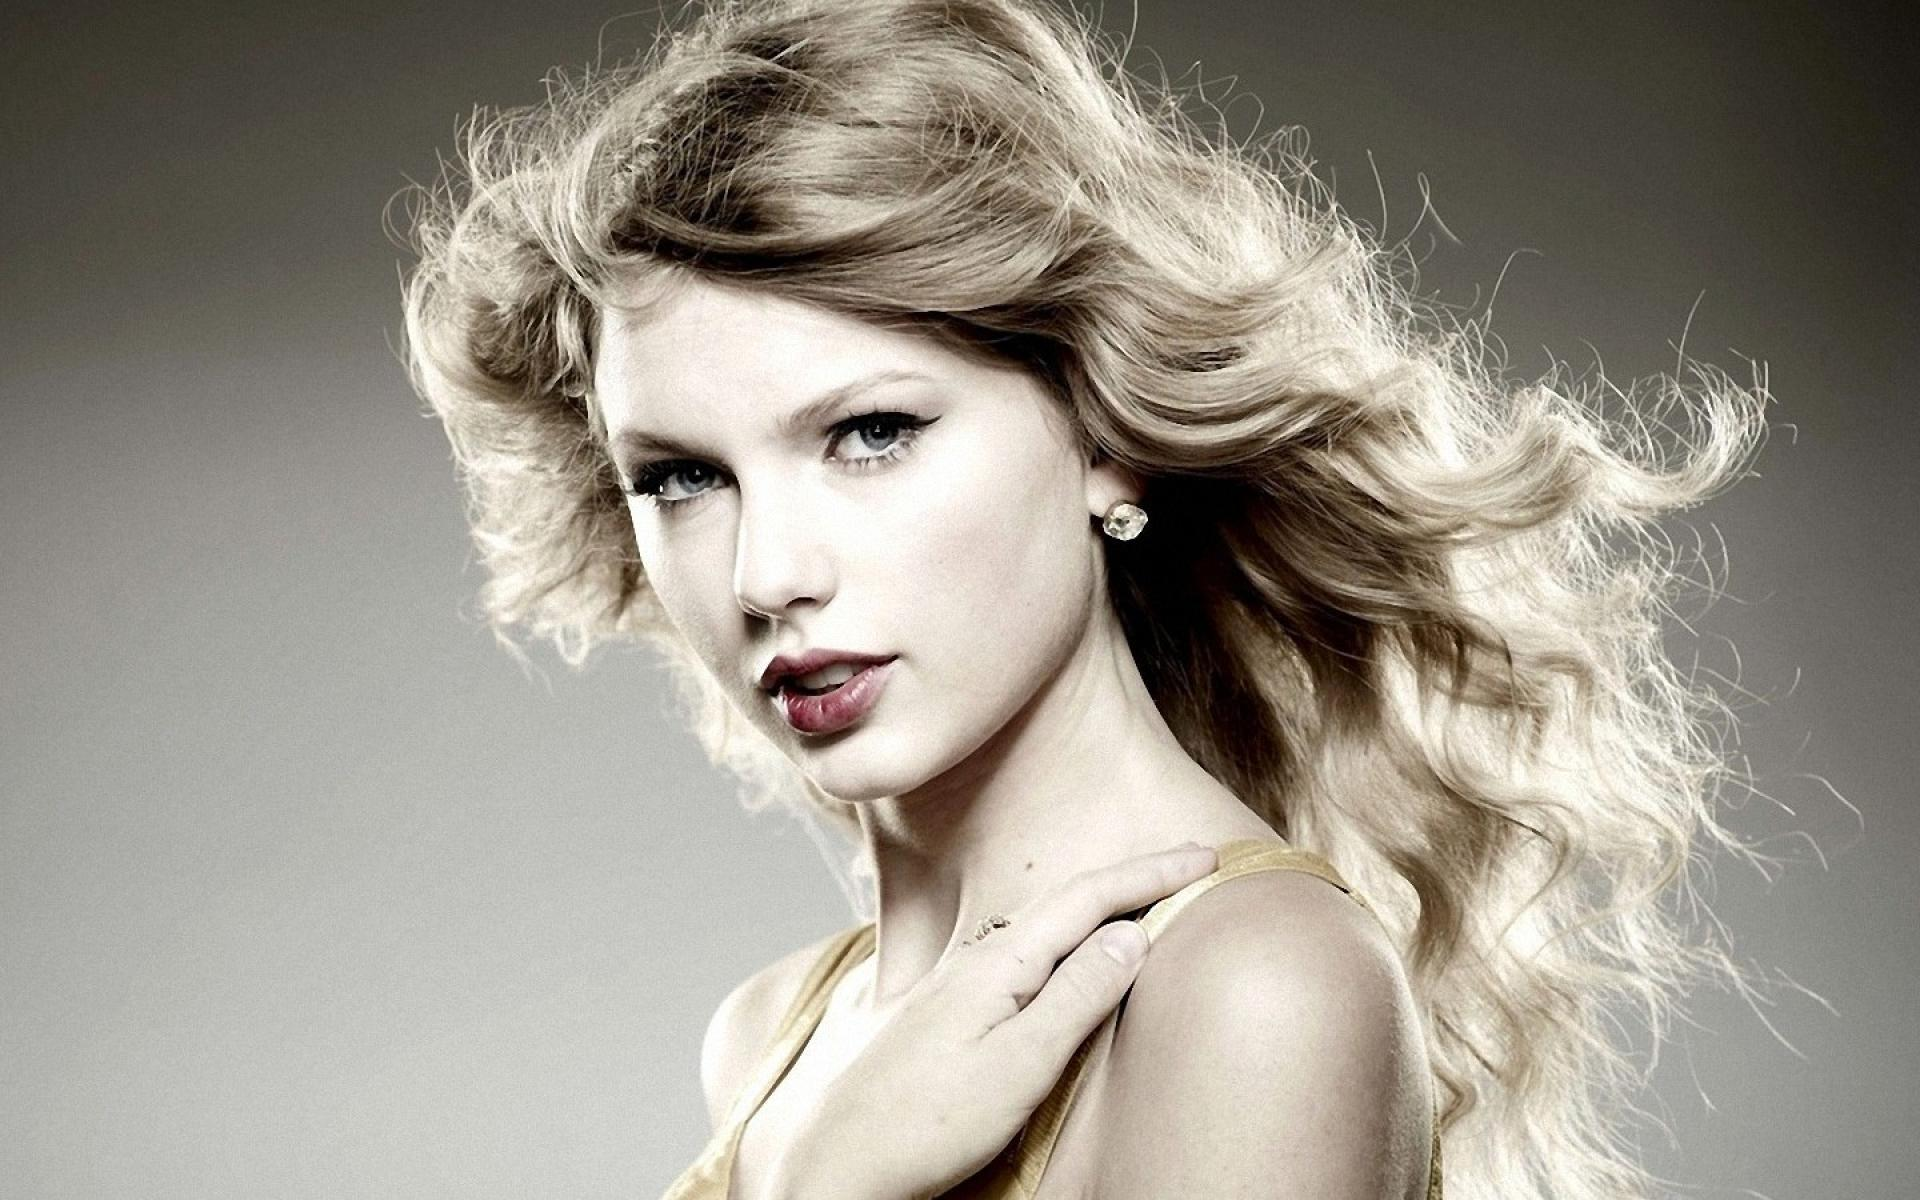 Taylor Swift Wallpaper Collection For Free Download